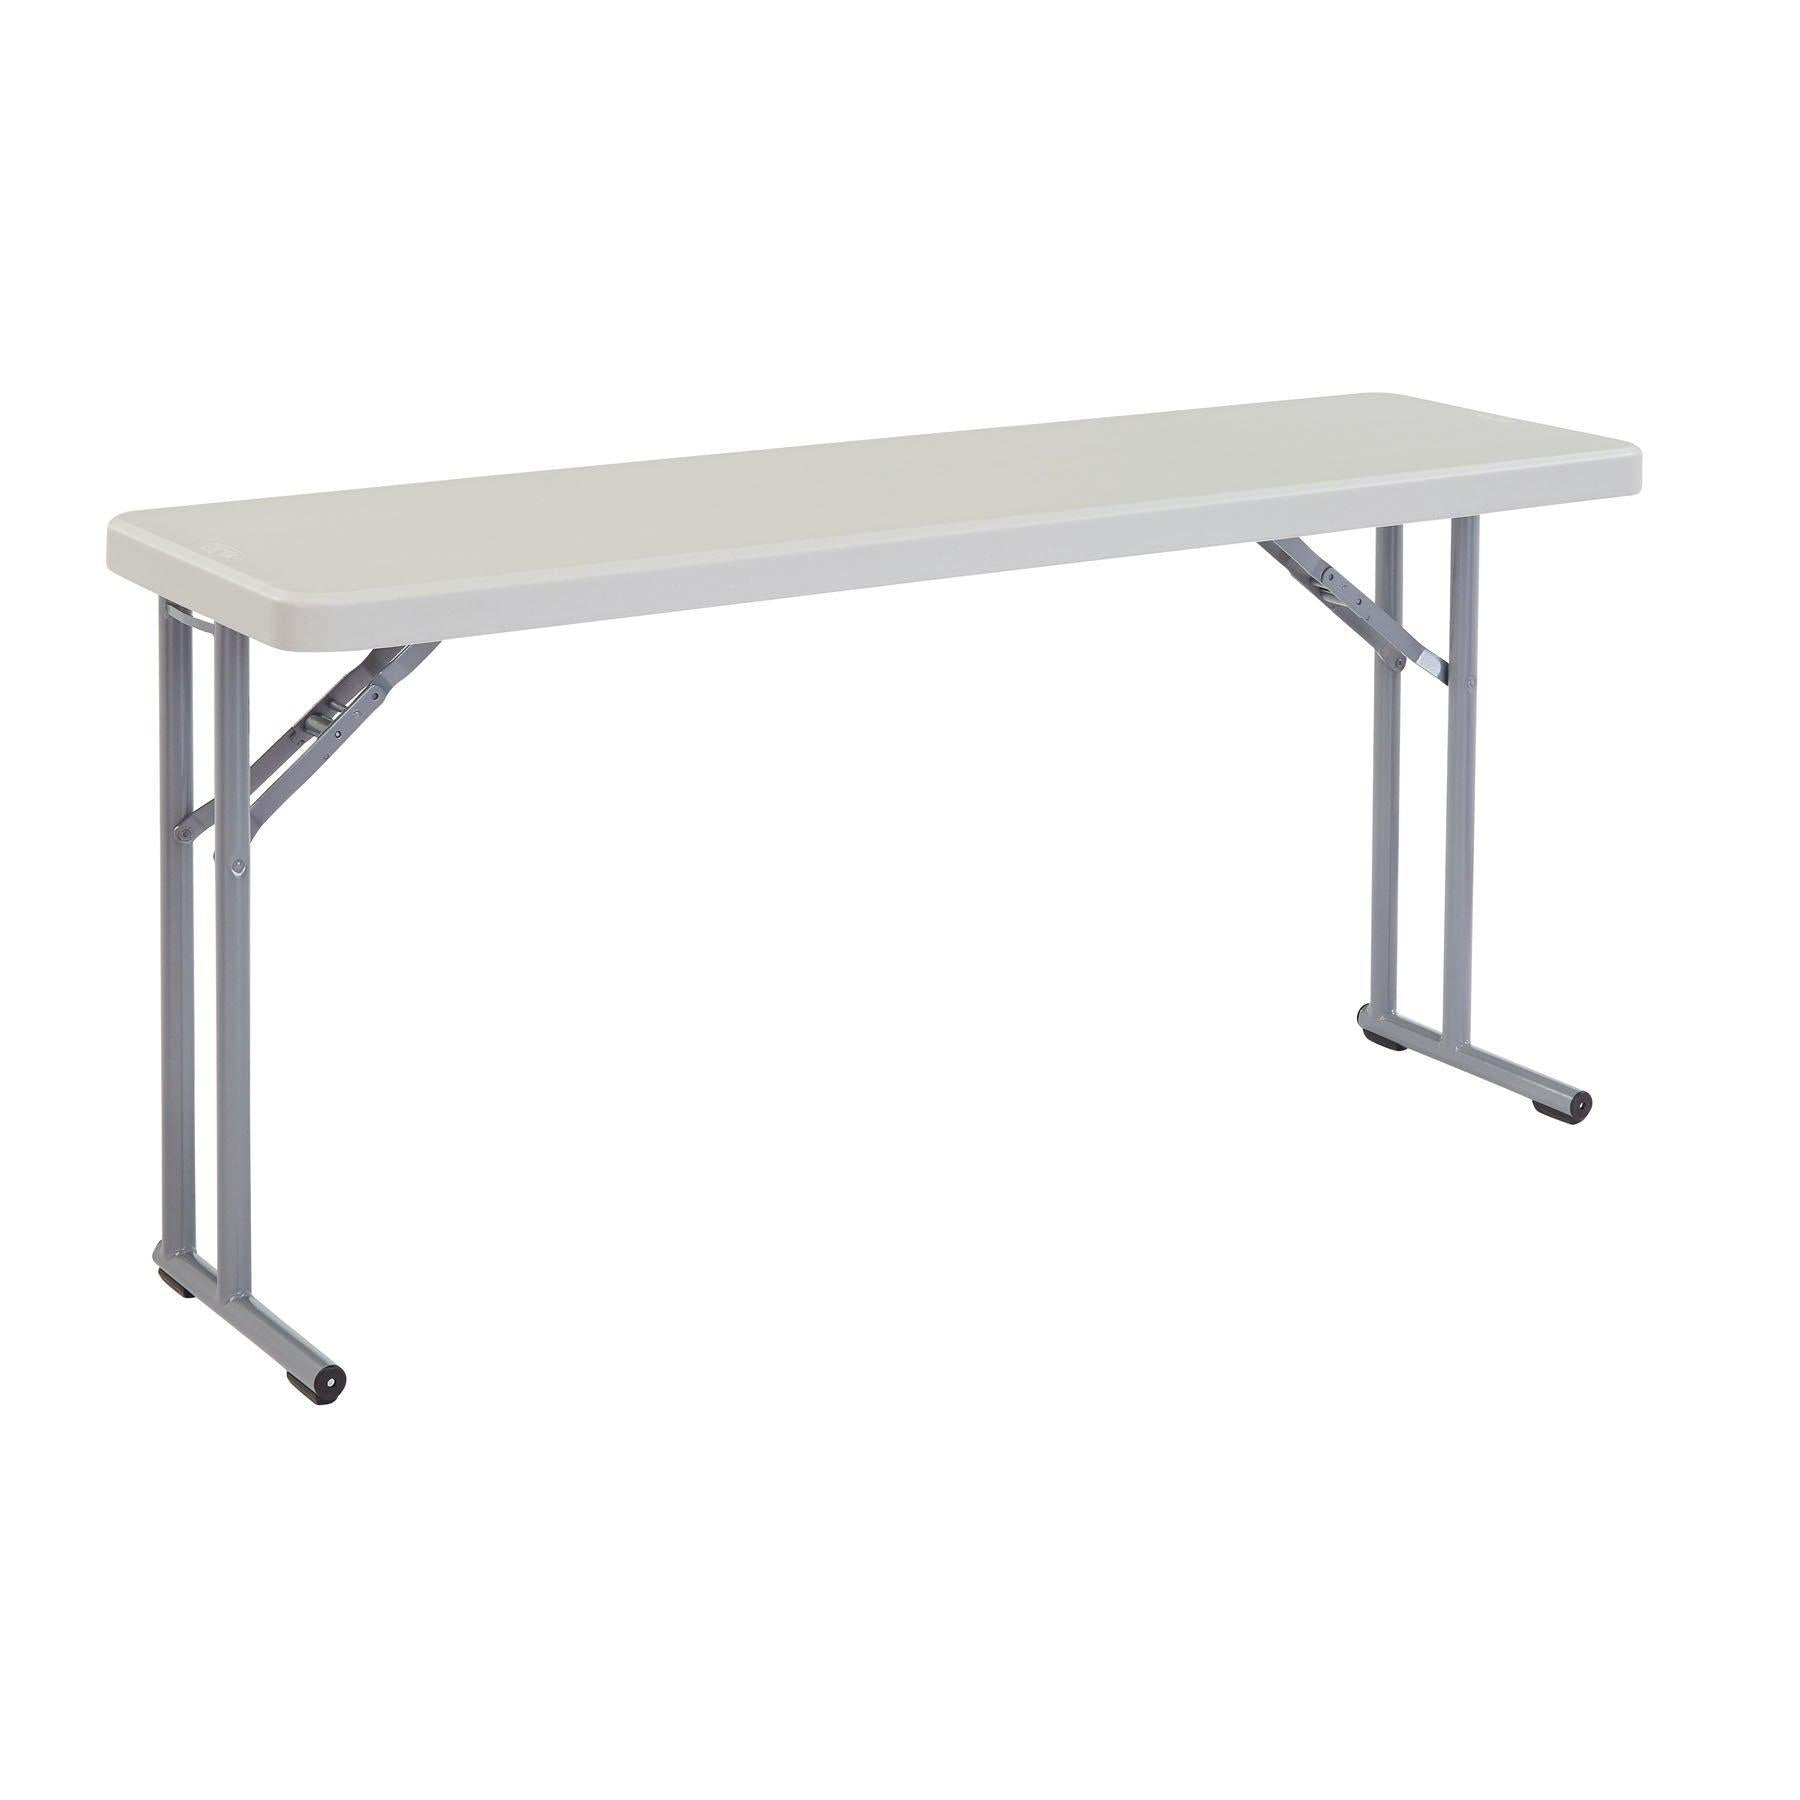 "Heavy Duty Seminar Folding Table, Speckled Grey-Tables-18"" x 60""-"